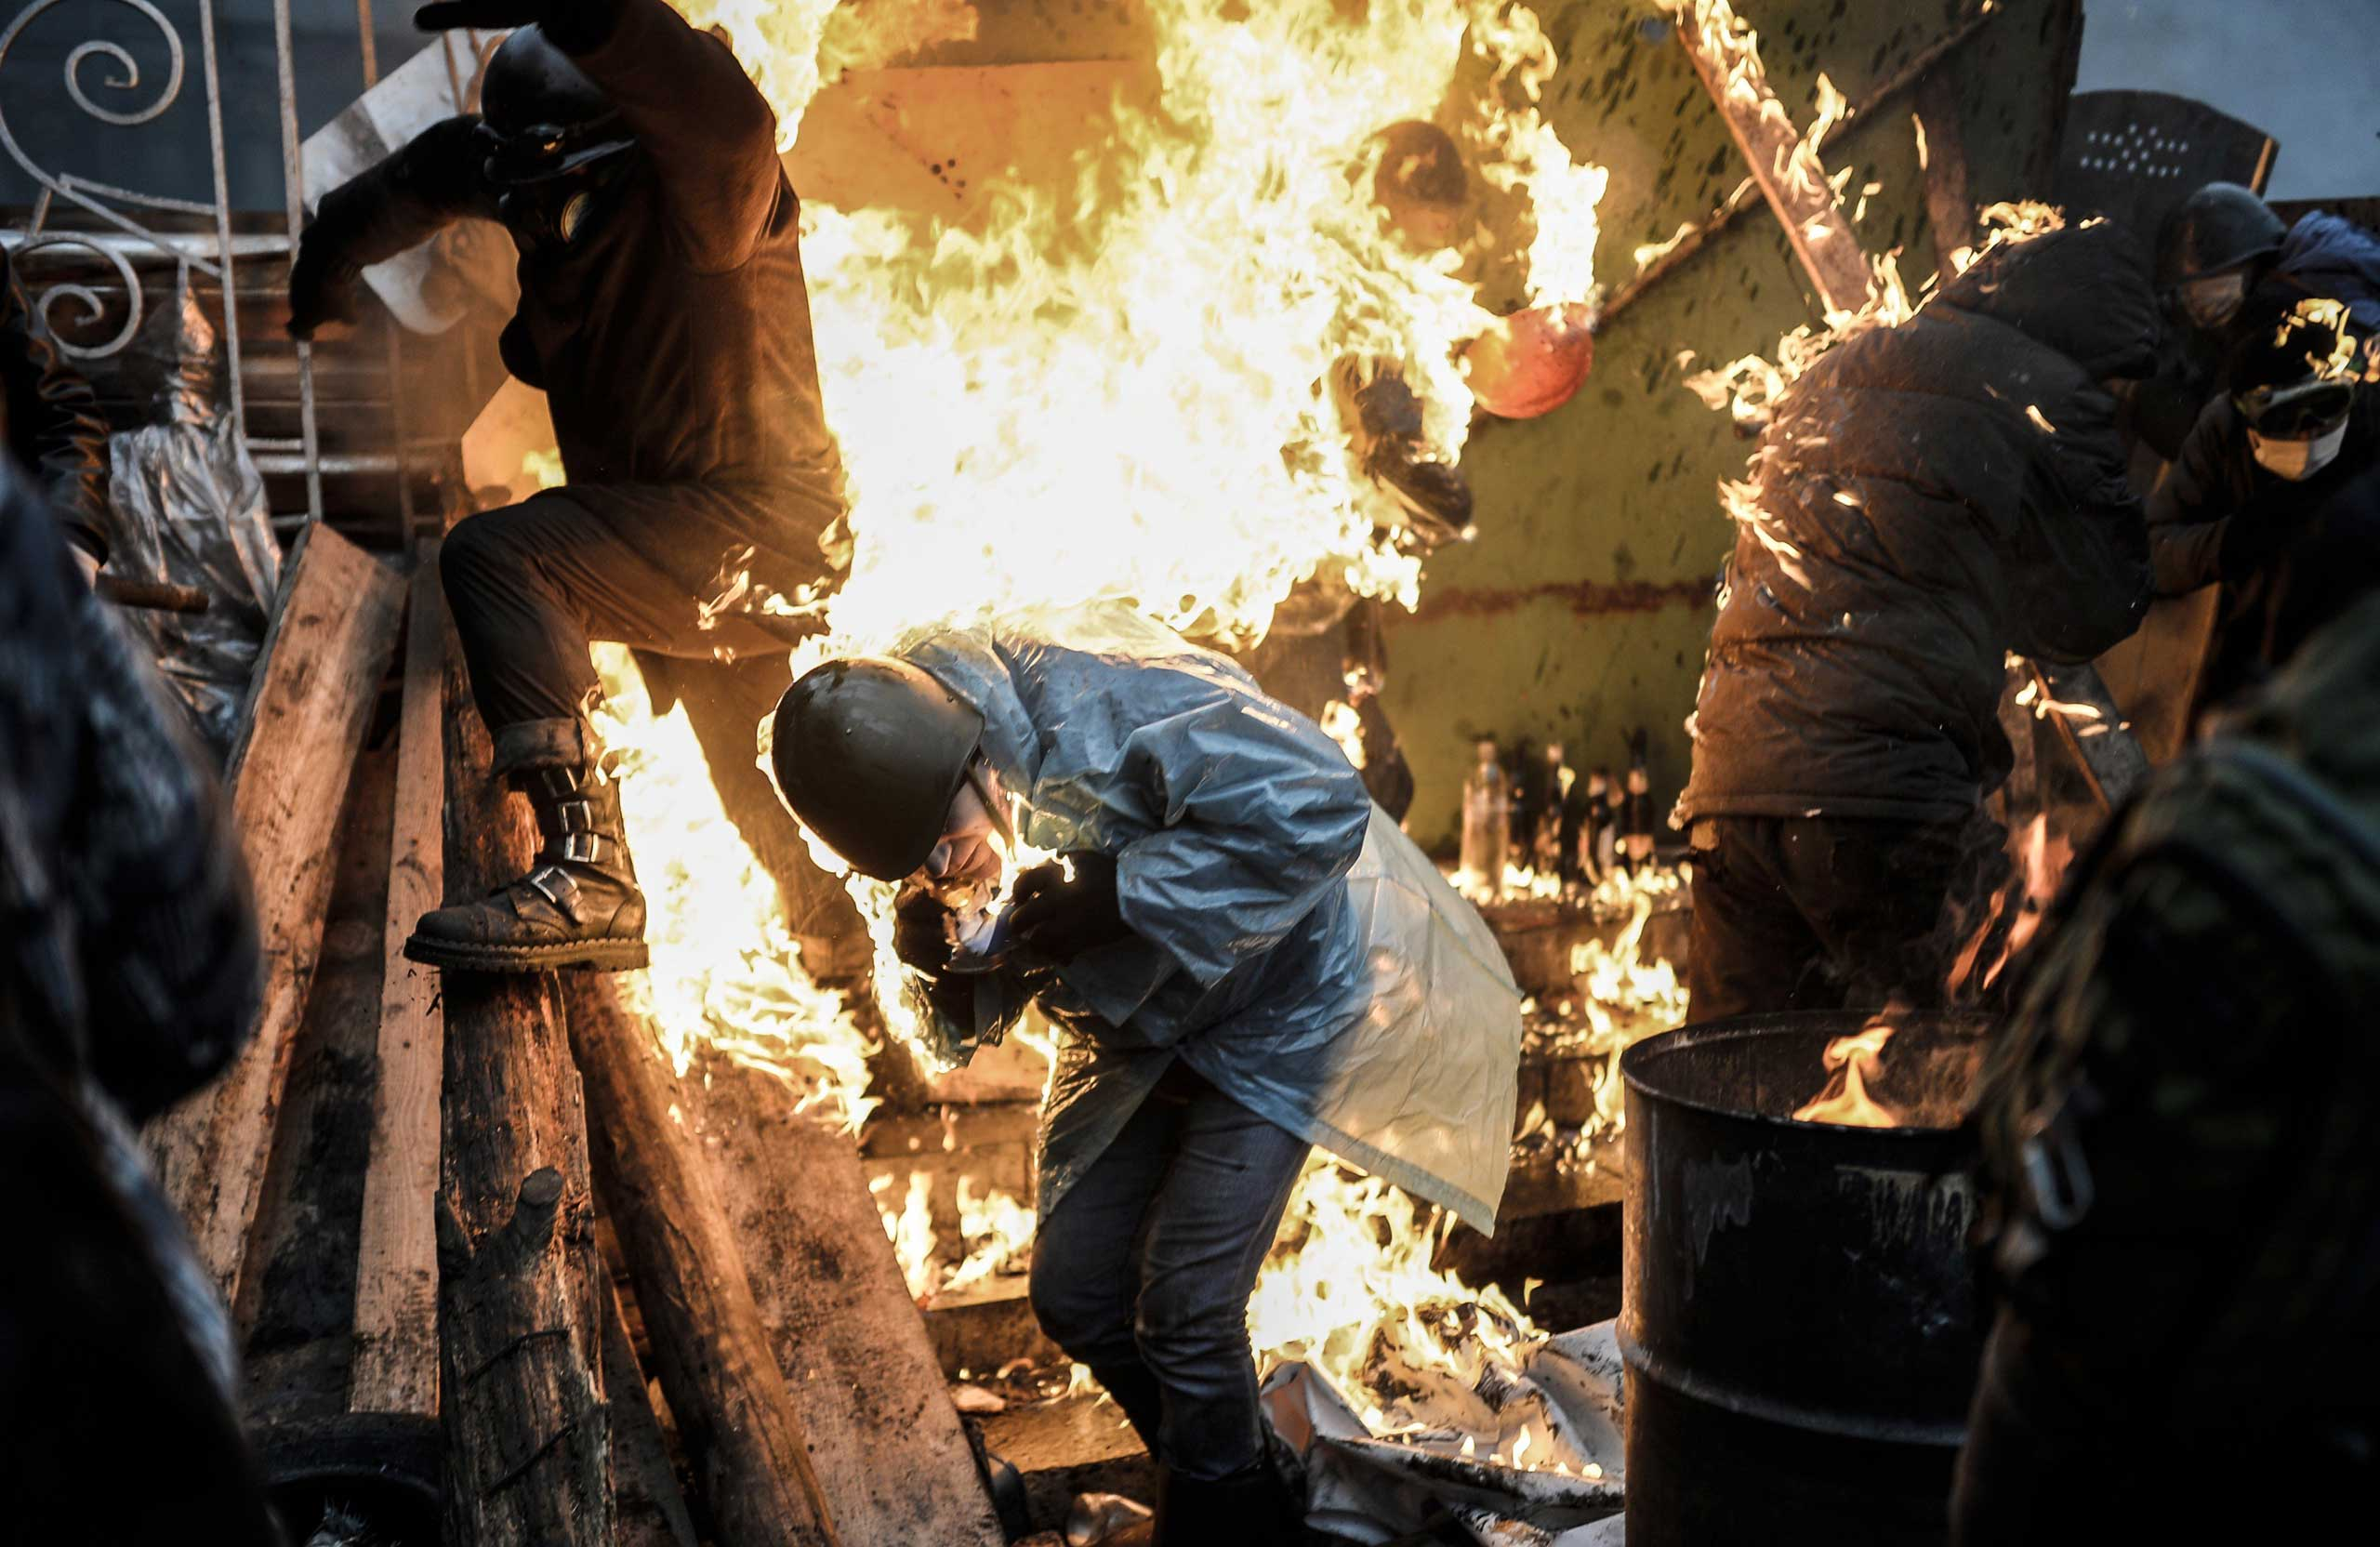 Protesters burn as they stand behind burning barricades during clashes with police on February 20, 2014 in Kiev, Ukraine.